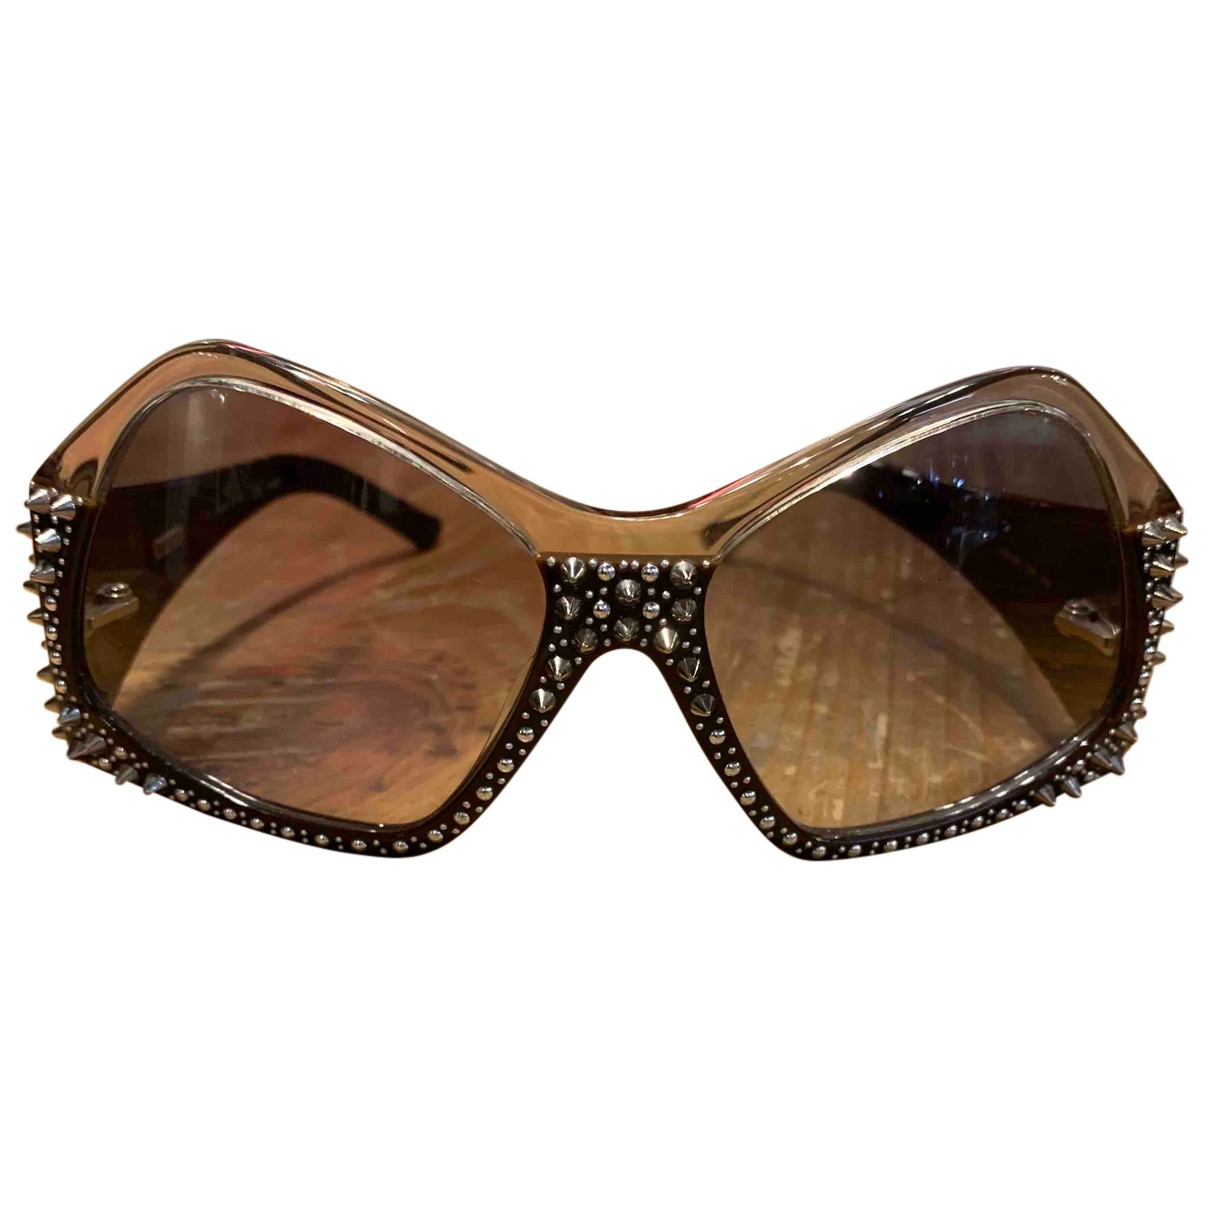 Fendi N Brown Sunglasses for Women N